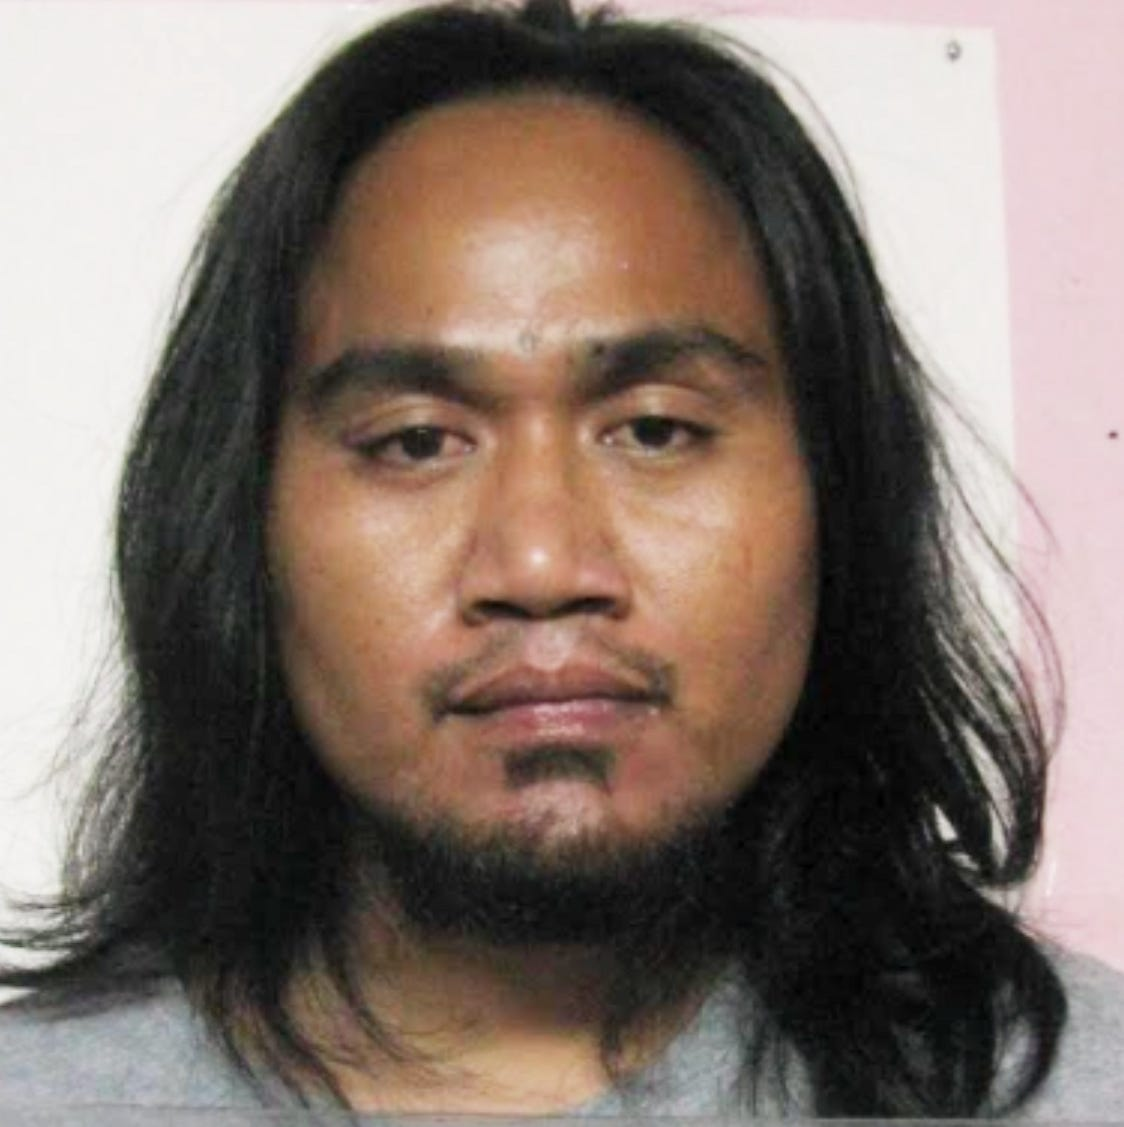 Bayo Likity charged in court, allegedly peed on the floor at the Micronesia Mall